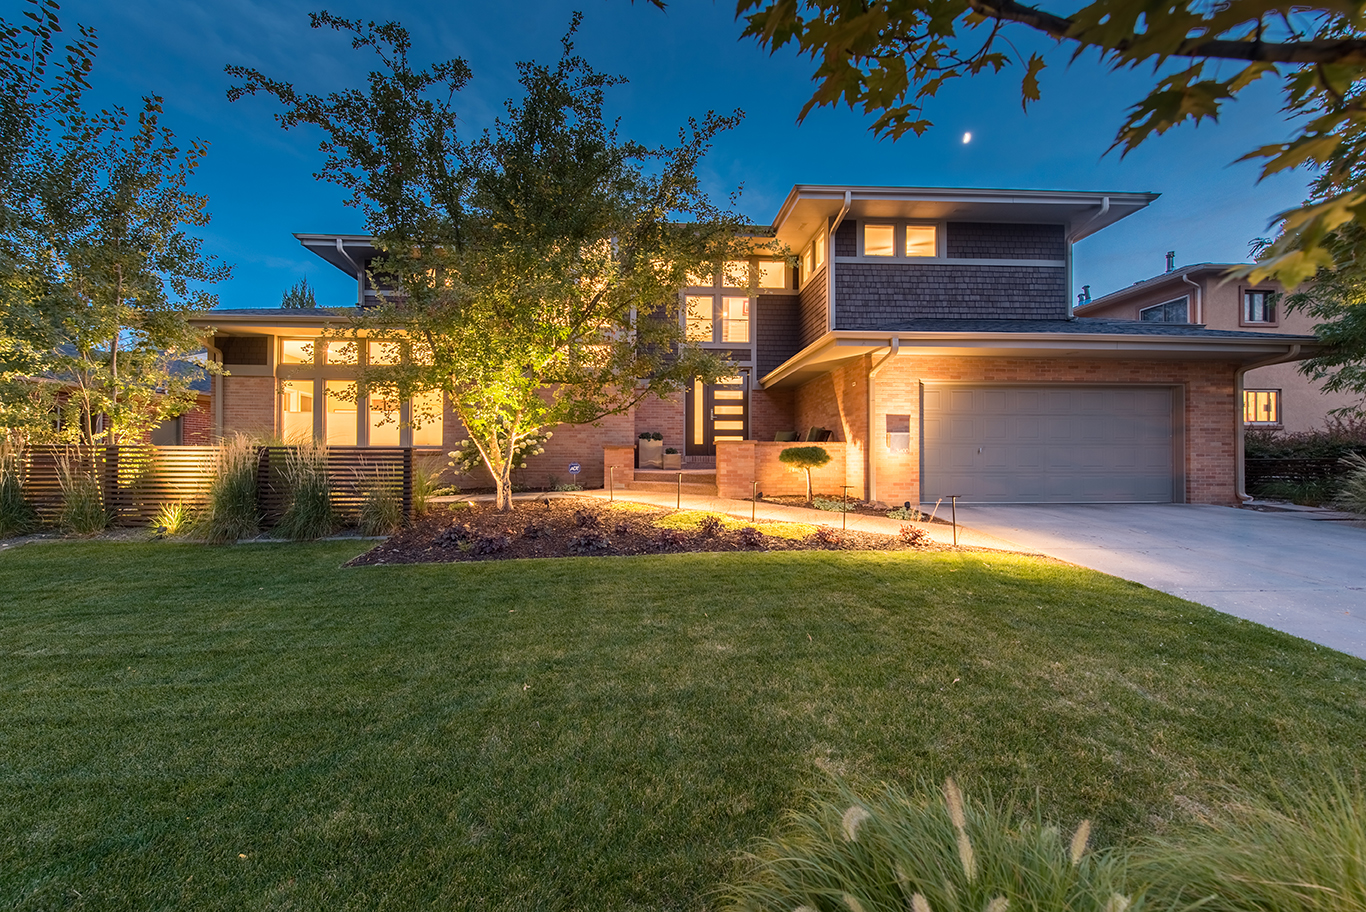 3400 East Virginia Avenue, Denver, CO. Listed by LIV Sotheby's International Realty for $1,675,000.